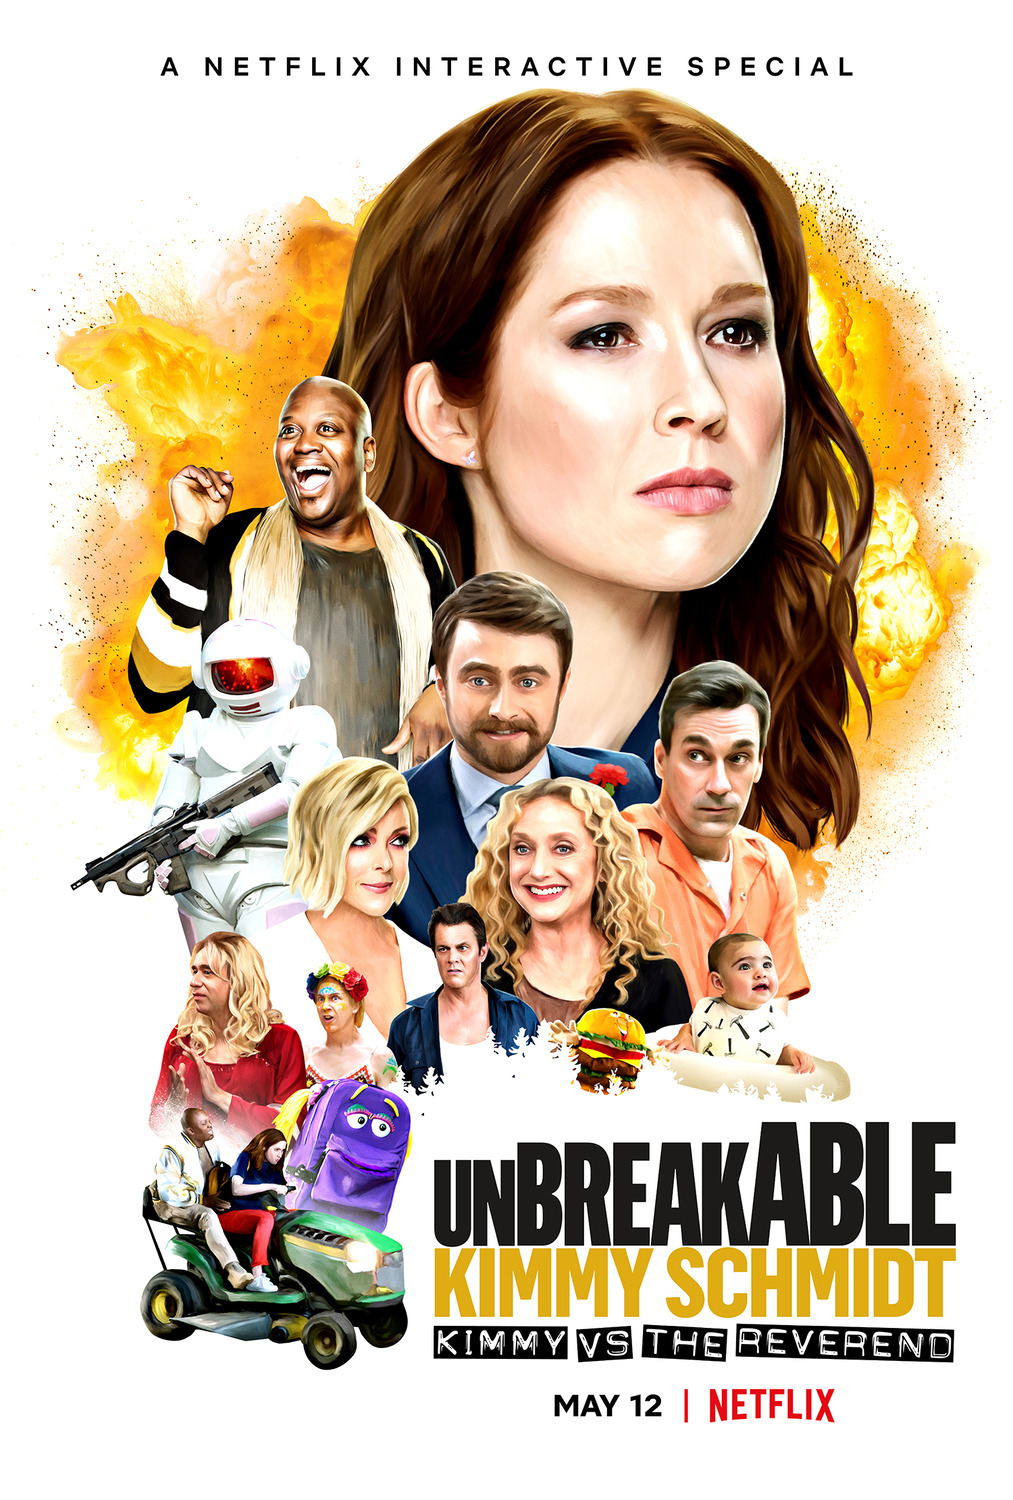 And Available in Multiple Format480p 720p 1080p 4k HD Hevc x264 and x265.Watch Now Moviesryan.com This Movies Genre is Based on Free Download A-Z index, Web Series, Action,English,Hindi dubbed,Horror,War Movies. Hindi Dubbed Hollywood Movies. ThisFilm/MovieAlso Available in Dual Audio Movies. You Can GetDirect Google Drive Link with High Speed Below.